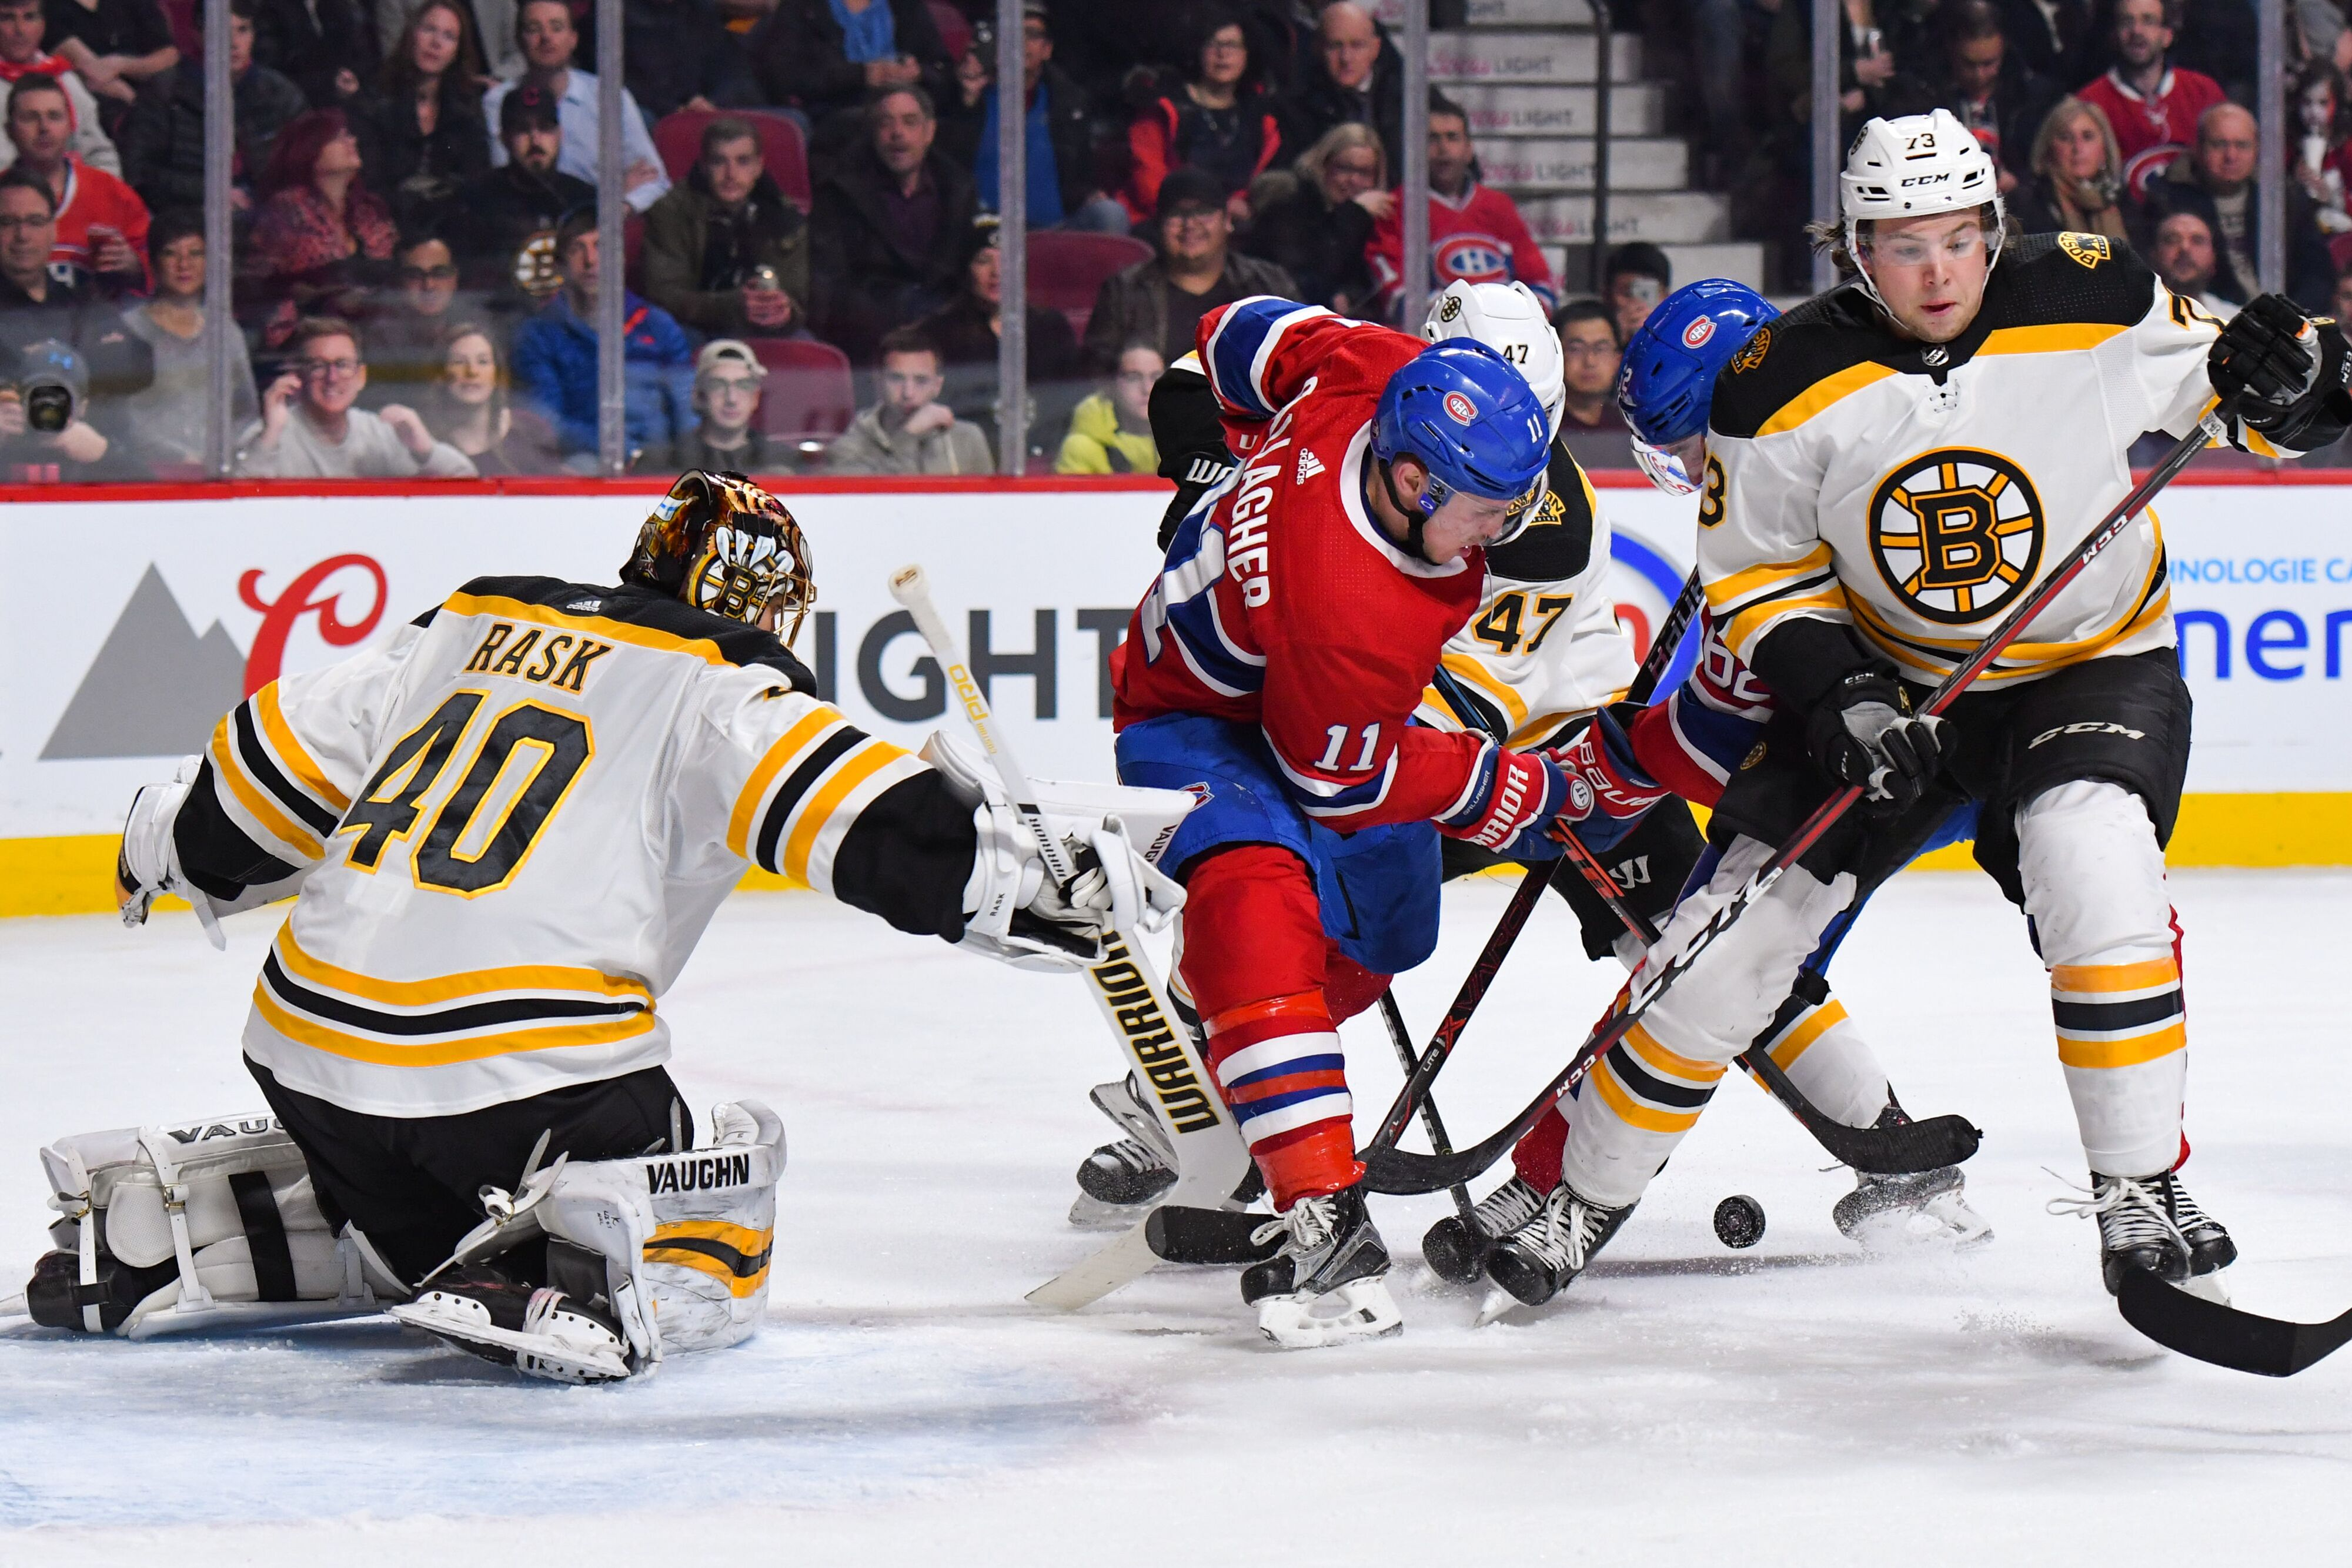 Boston Bruins Gameday 43 Montreal Makes First Trip To Td Garden